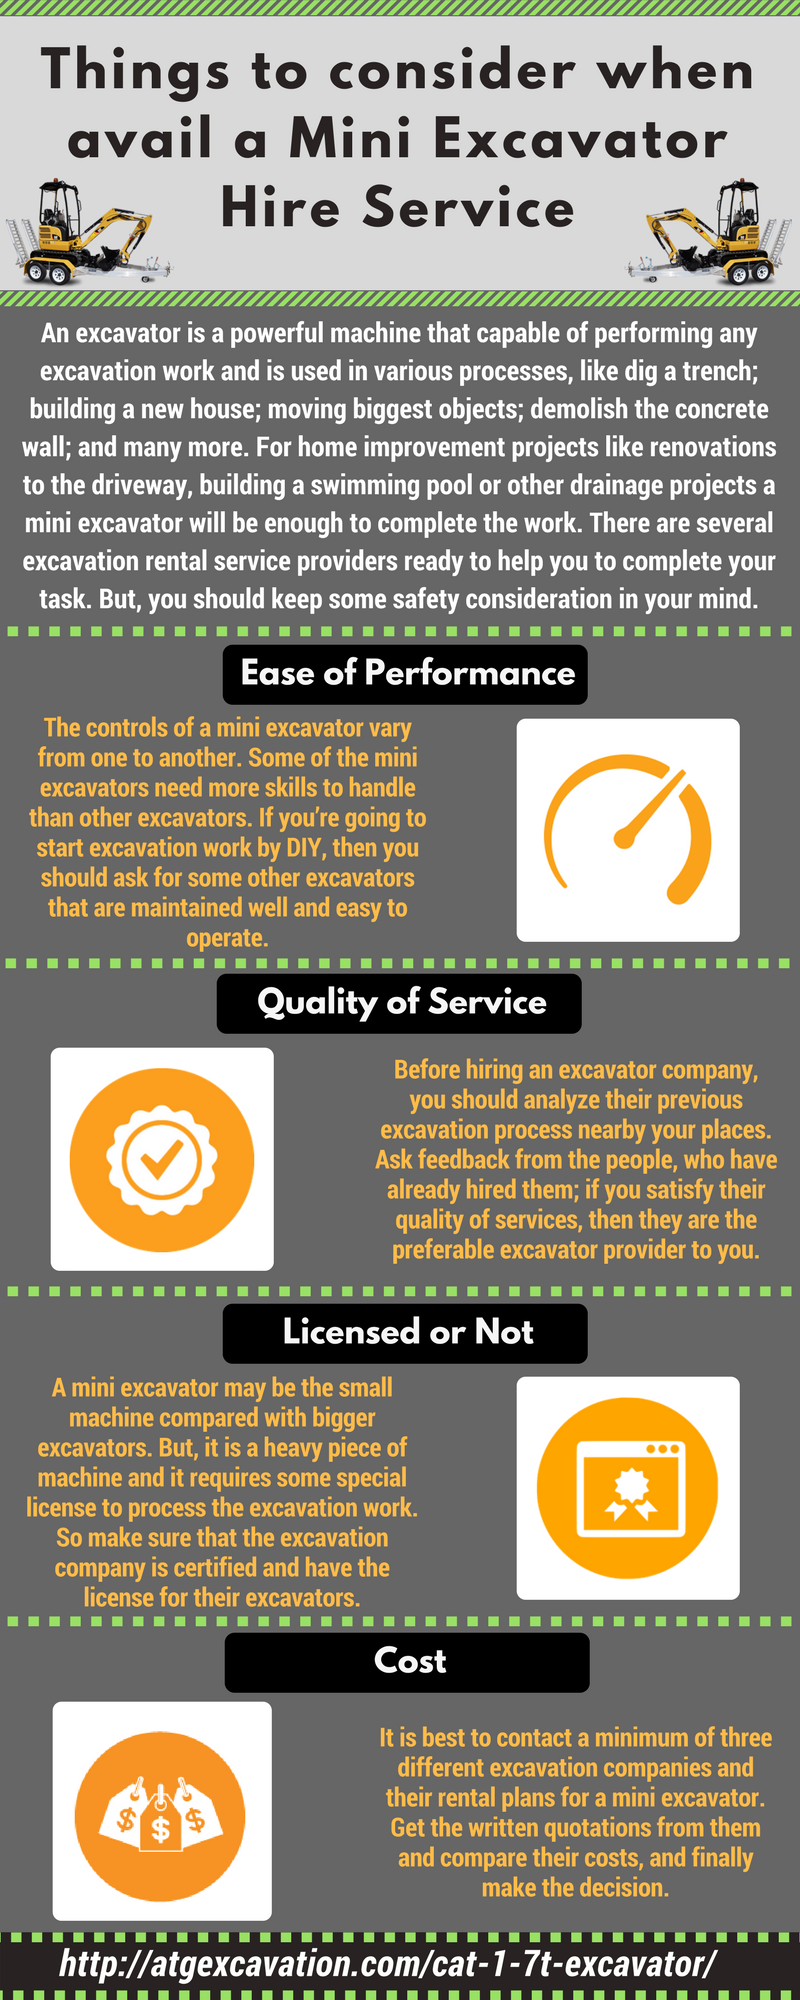 things-to-consider-when-avail-a-mini-excavator-hire-service-infographic-galleryr